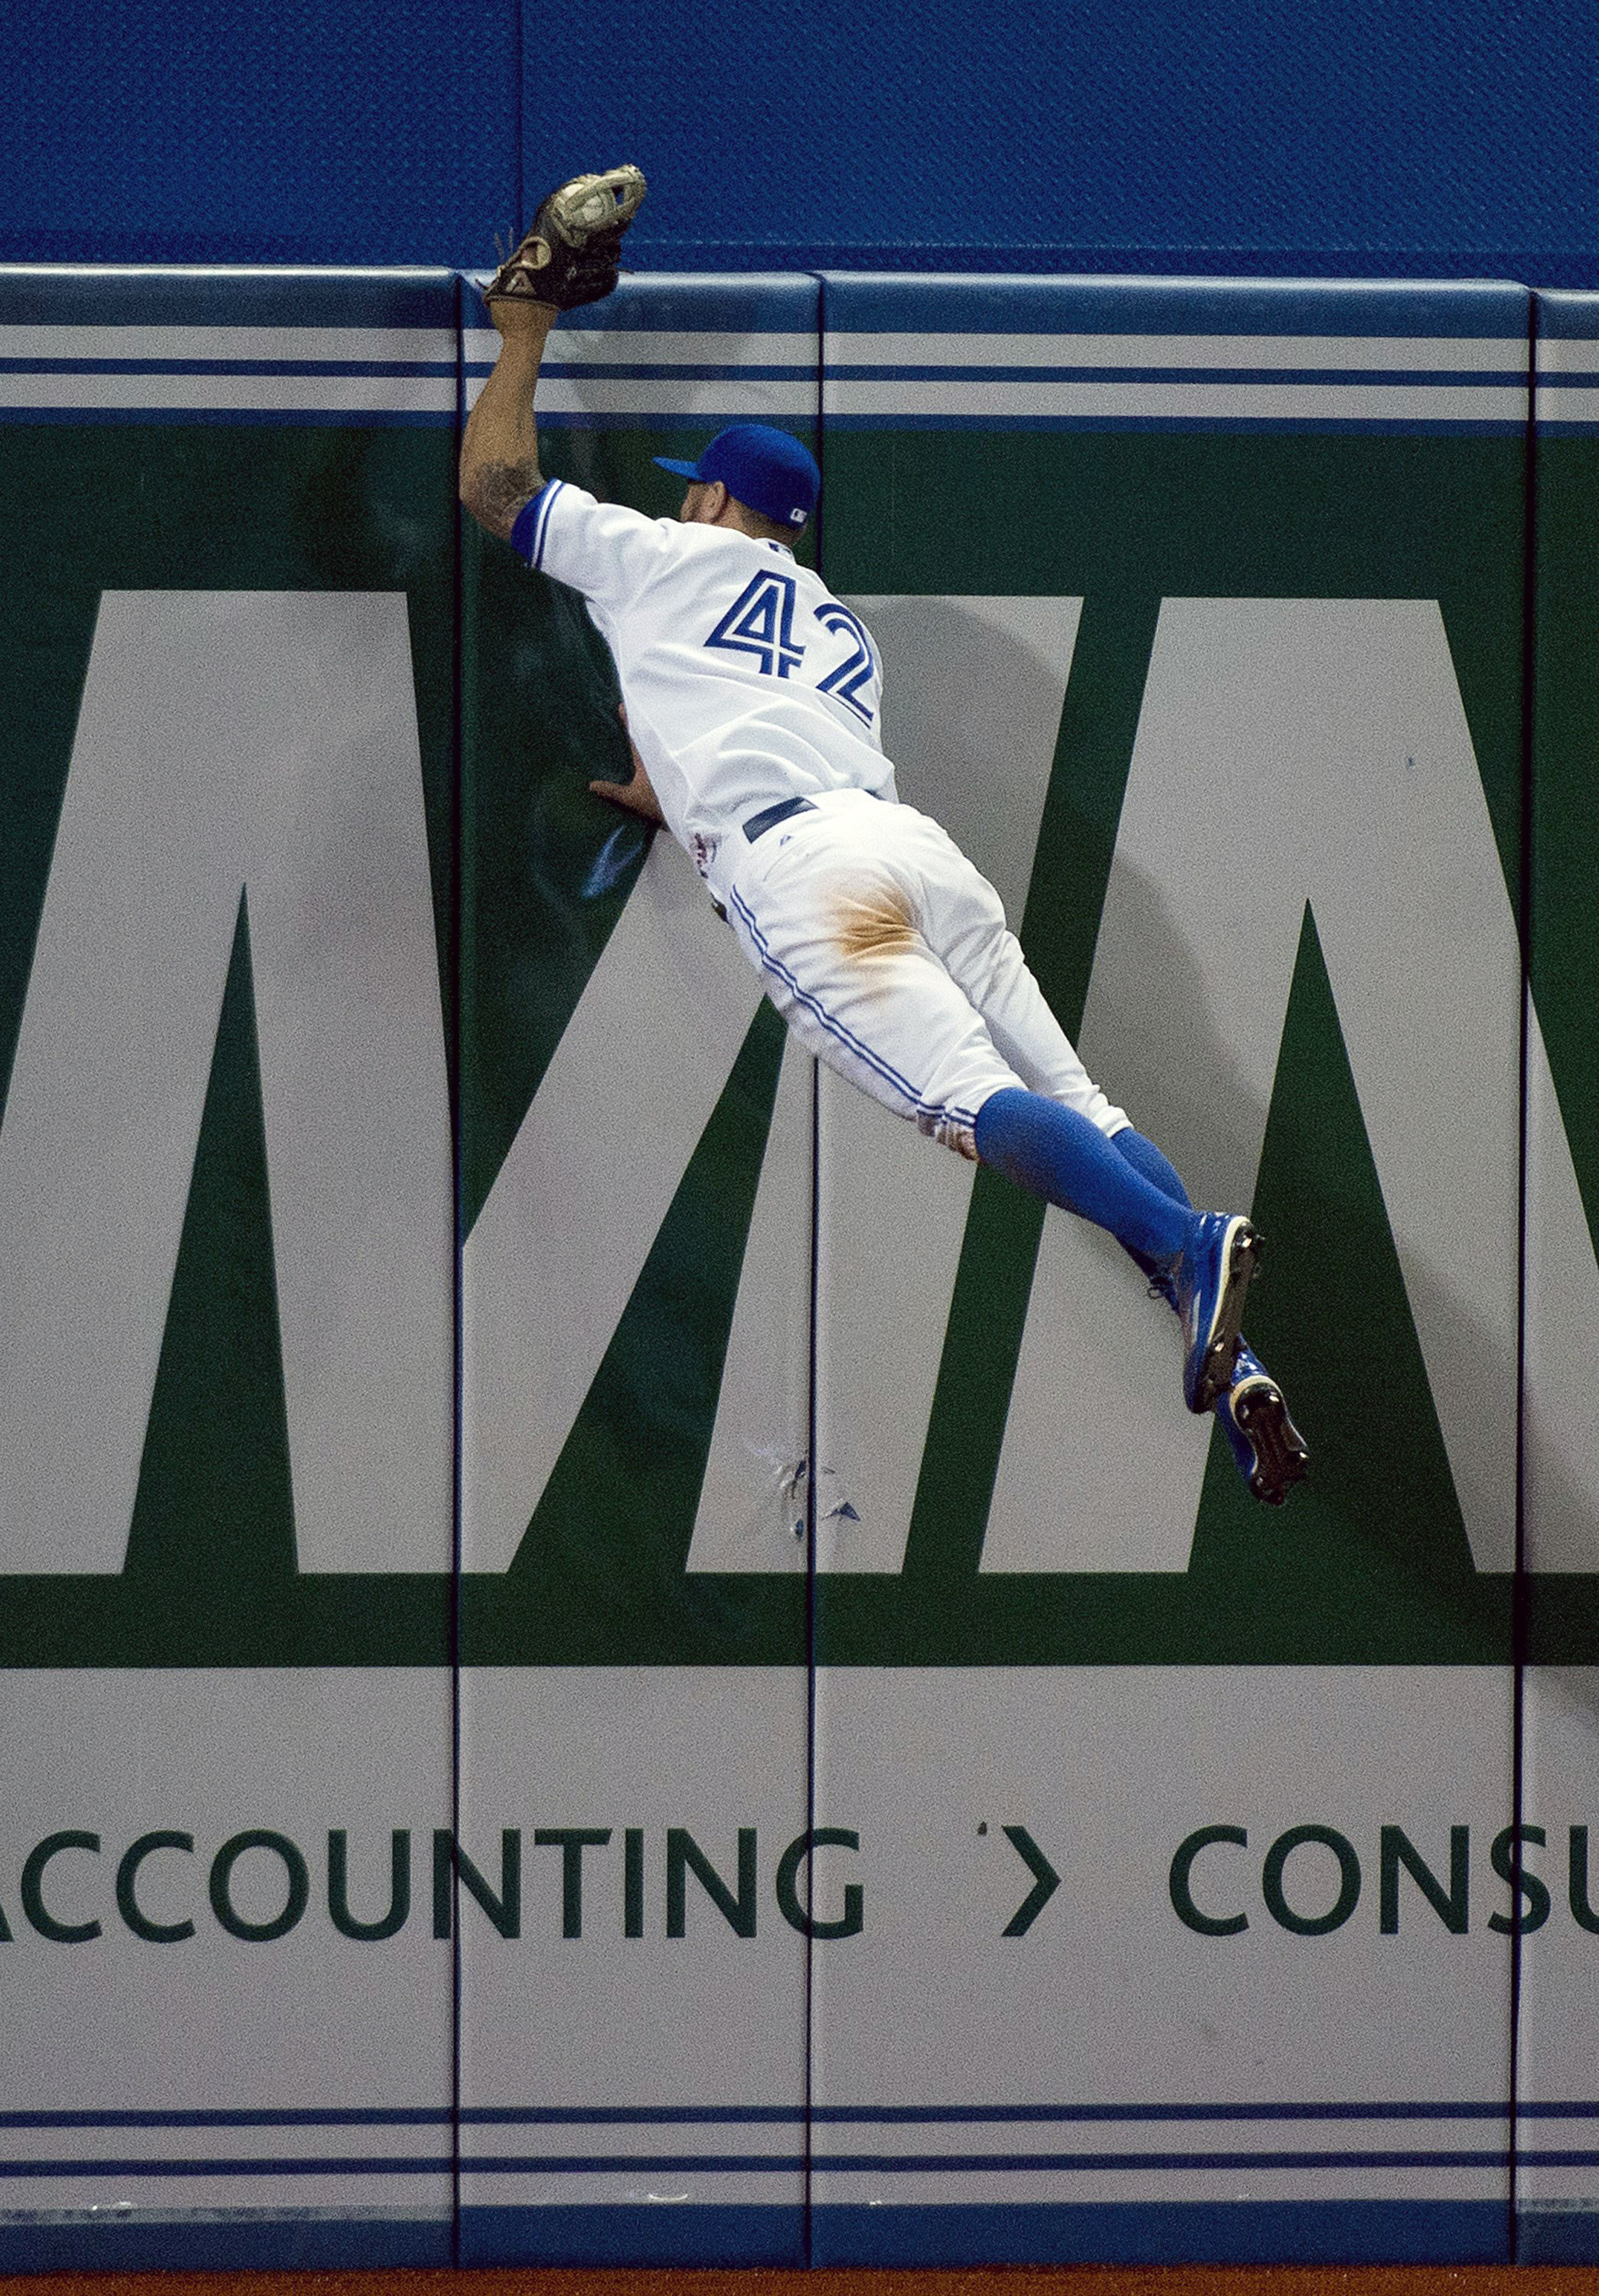 Toronto Blue Jays left fielder Kevin Pillar makes a catch on the other side of the wall hit by Tampa Bay Rays Tim Beckham during the seventh inning of a baseball game, Wednesday, April 15, 2015 in Toronto. (Nathan Denette/The Canadian Press via AP)  MANDA